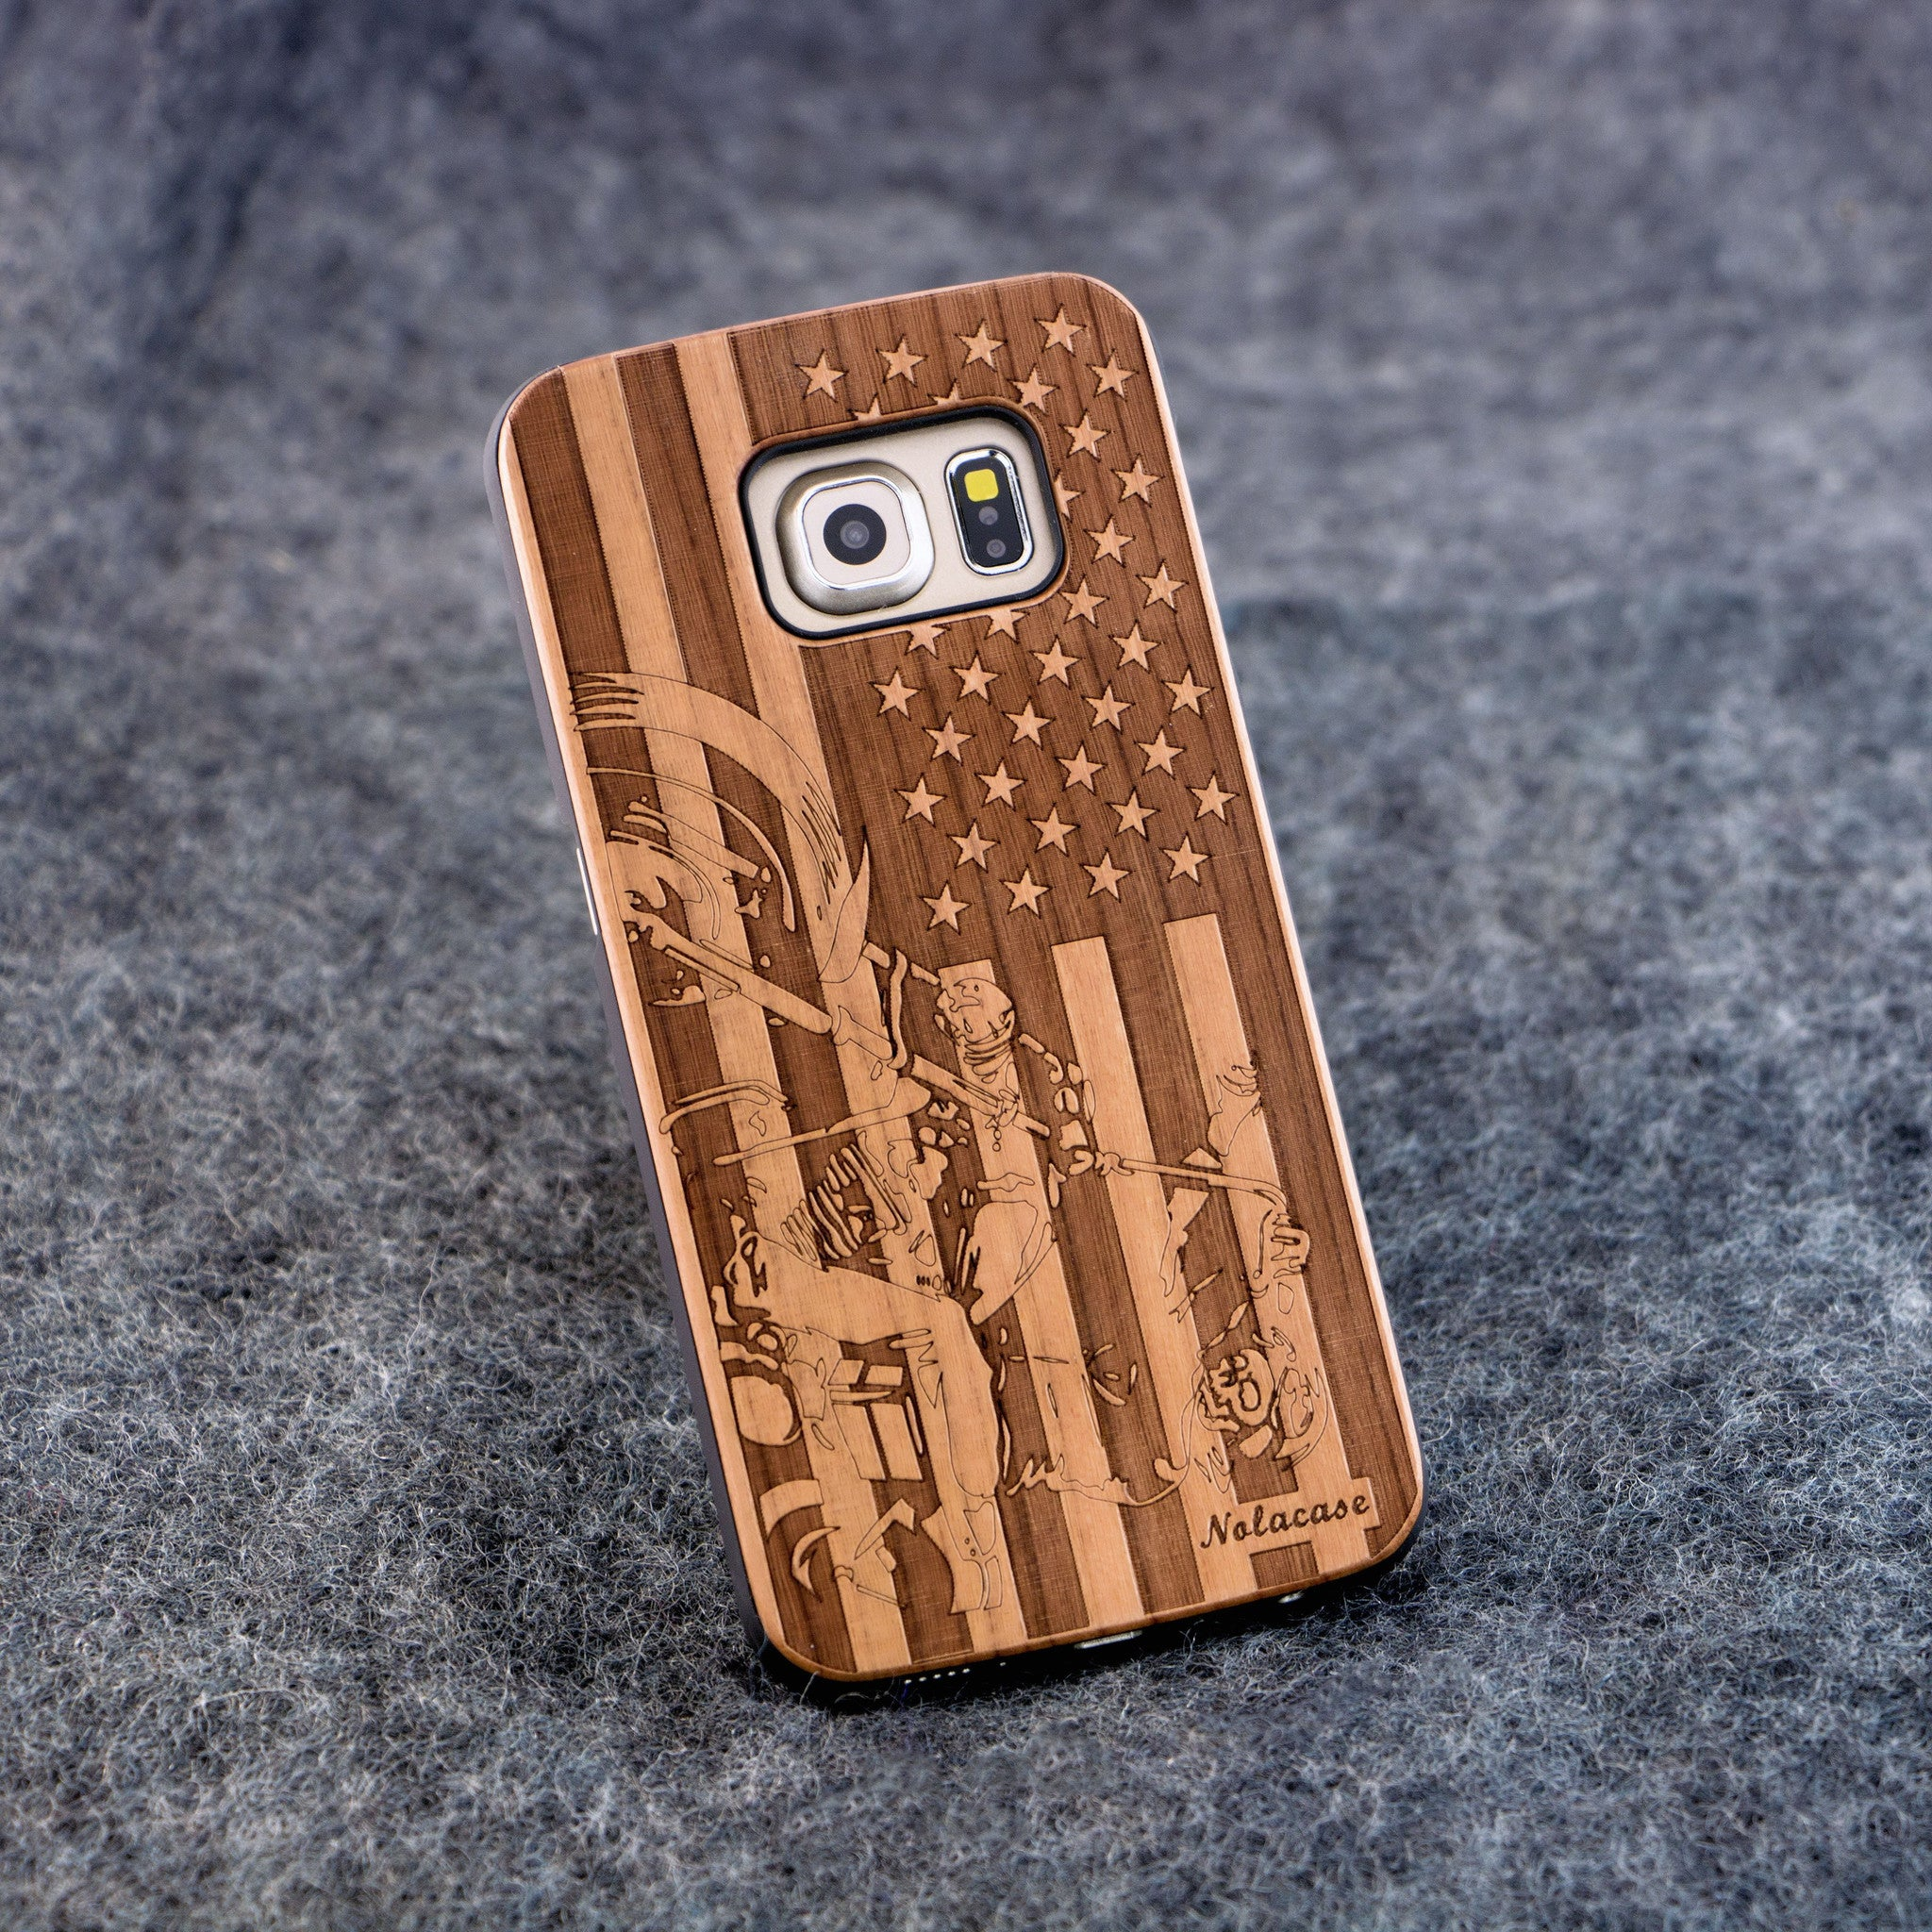 Samsung S6 Edge USA Flag with Motorcycle Wood Case - NOLACASE